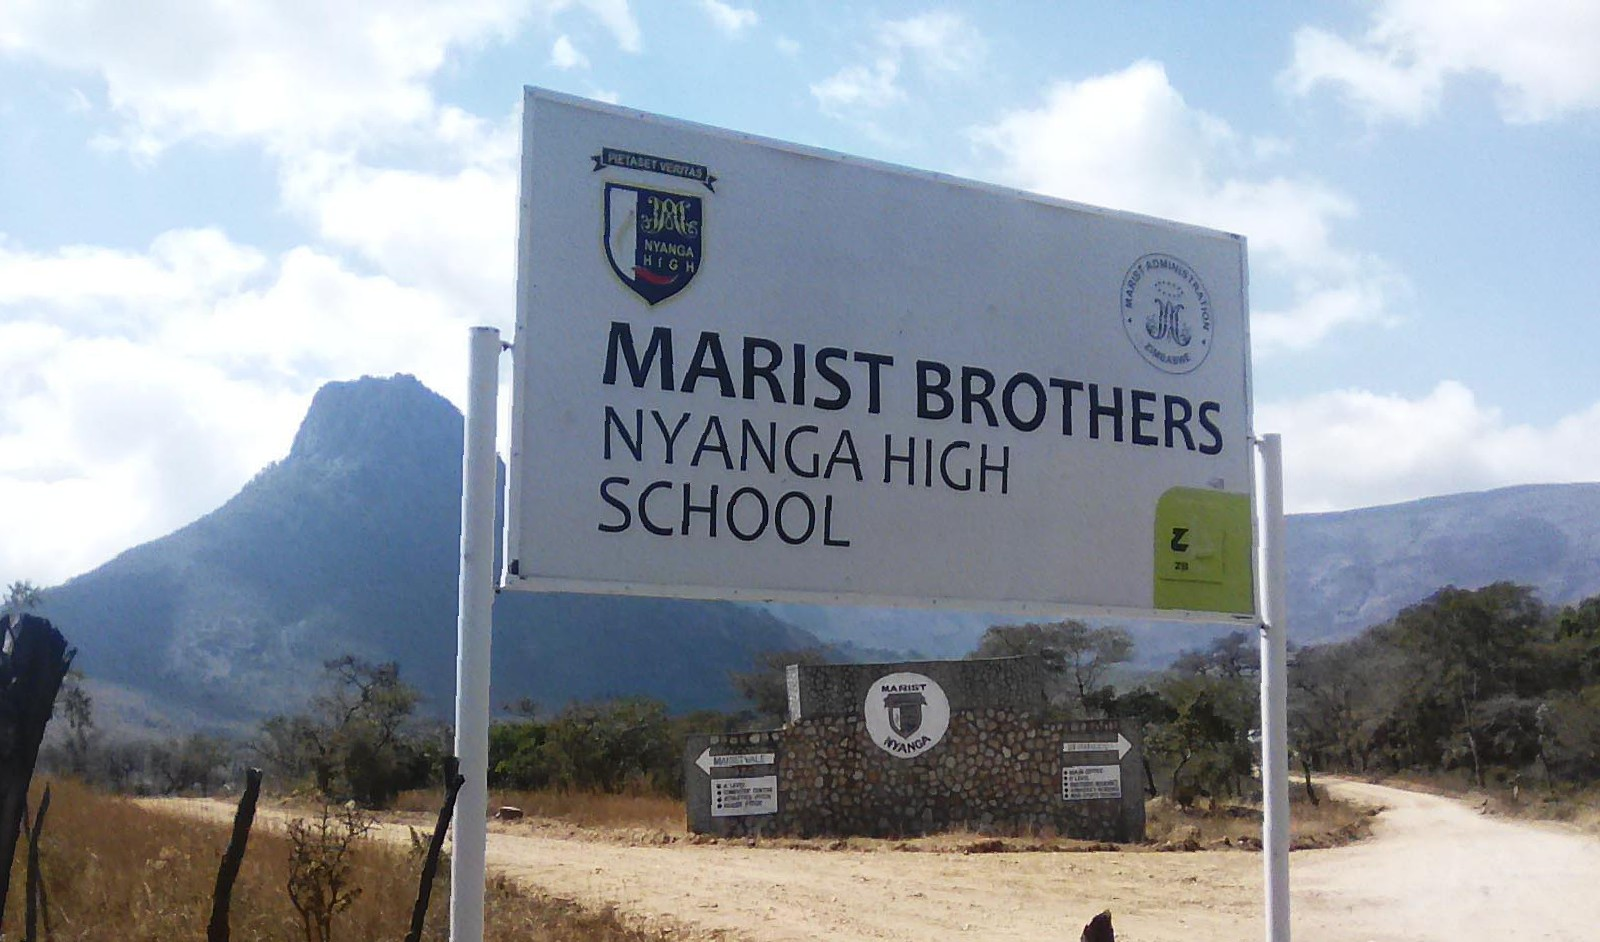 Nyanga High Marist Brothers